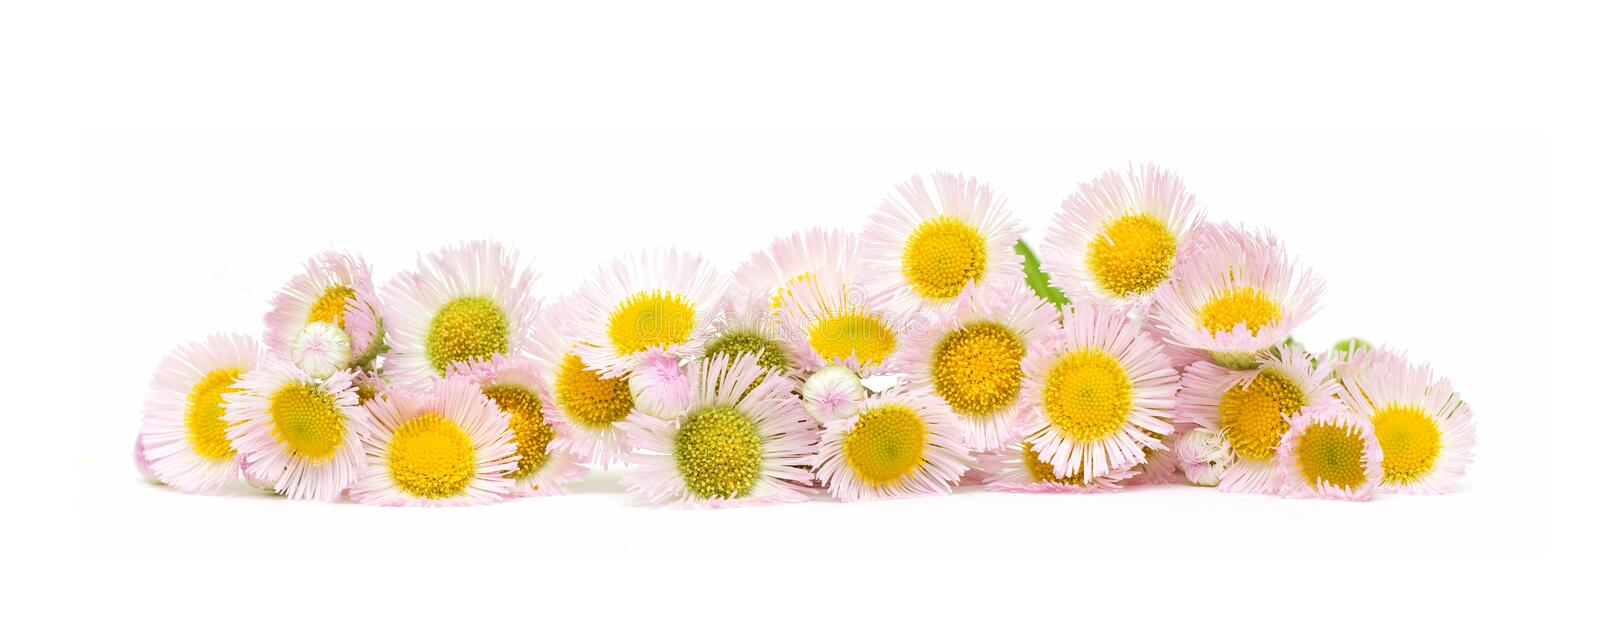 Chrysanthemum flowers isolated on a white background stock photography